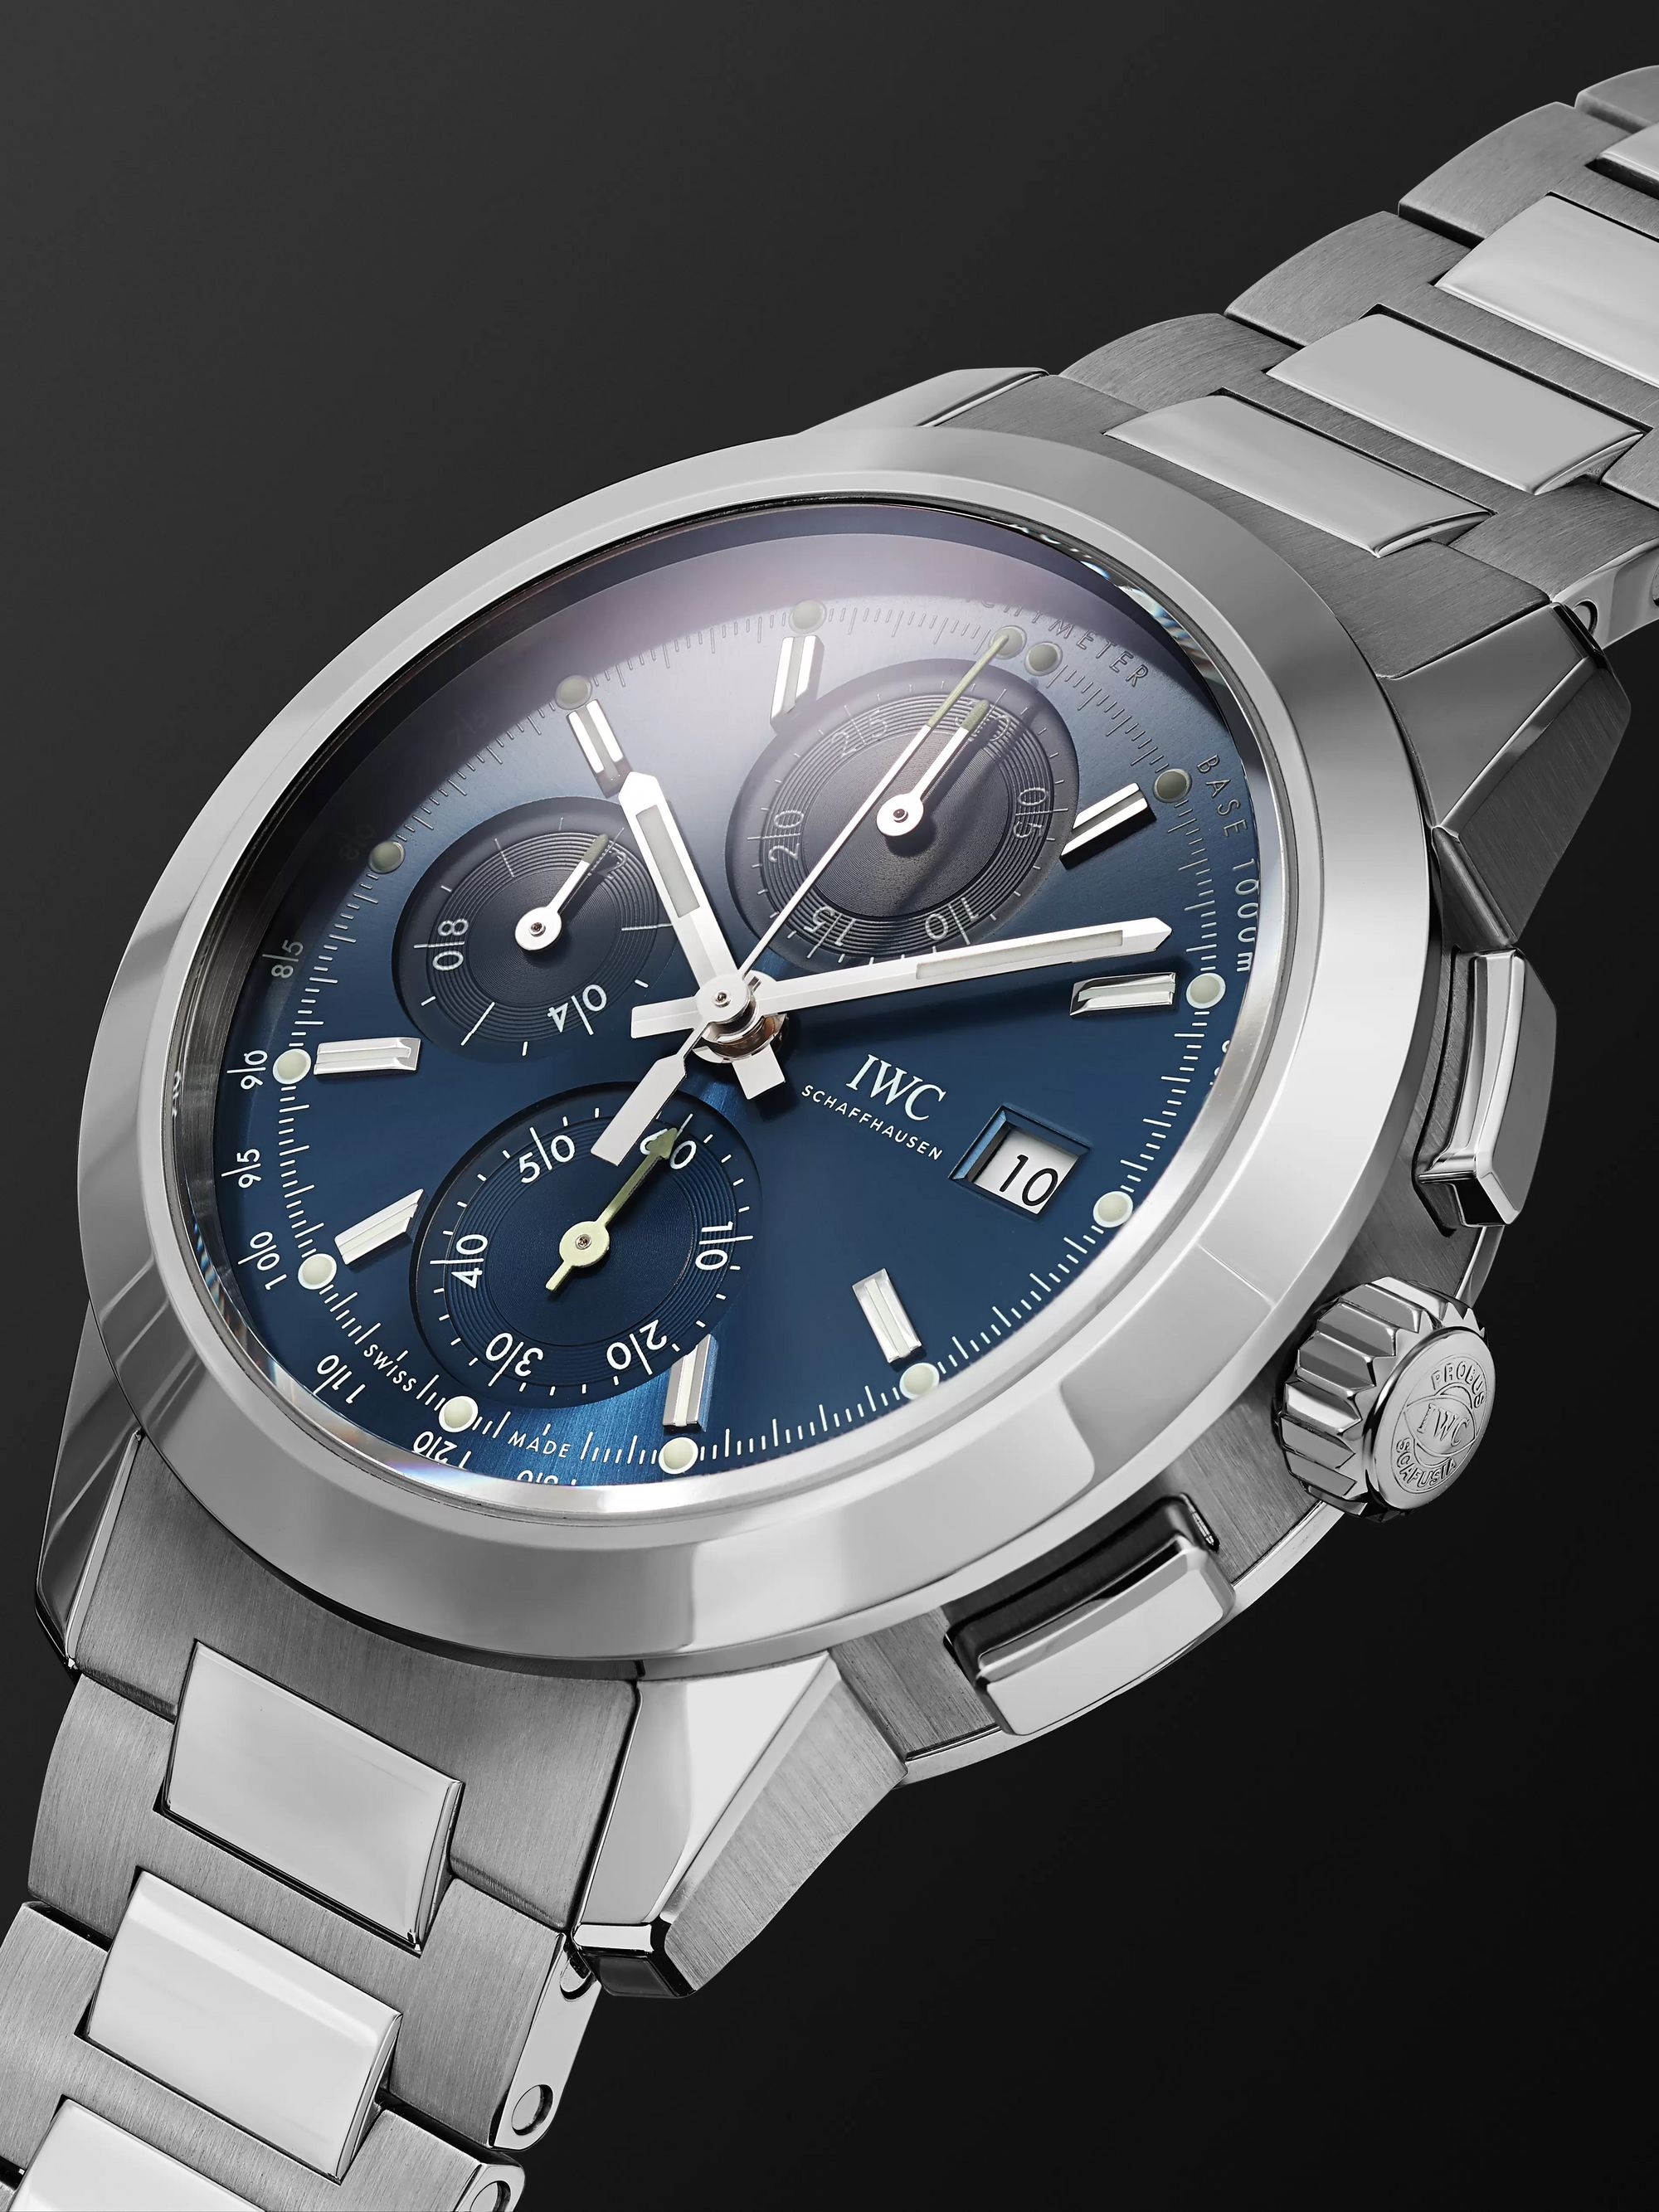 IWC SCHAFFHAUSEN Ingenieur Automatic Chronograph 42.3mm Stainless Steel Watch, Ref. No. IW380802